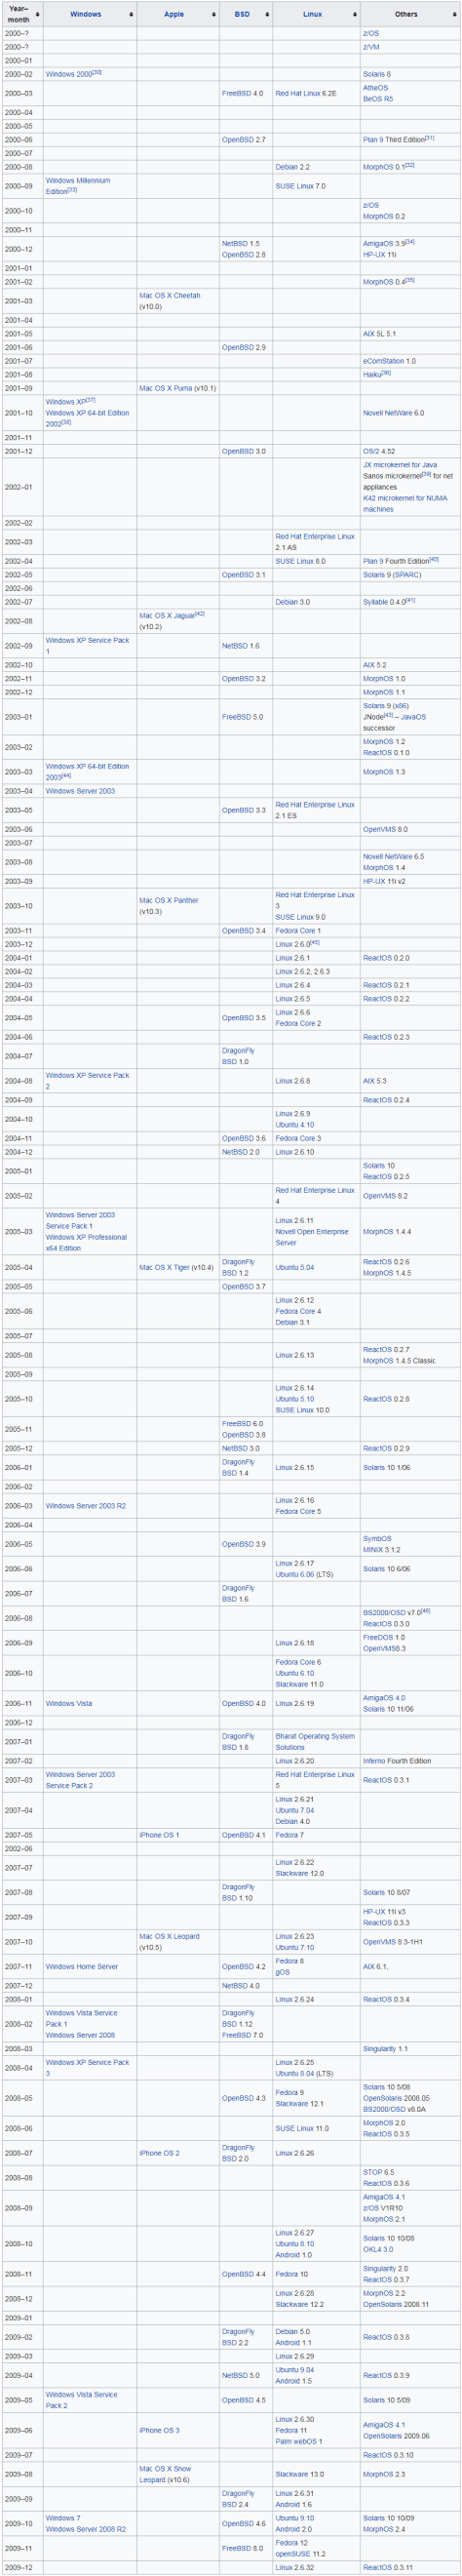 Timeline of Operating Systems 2000S